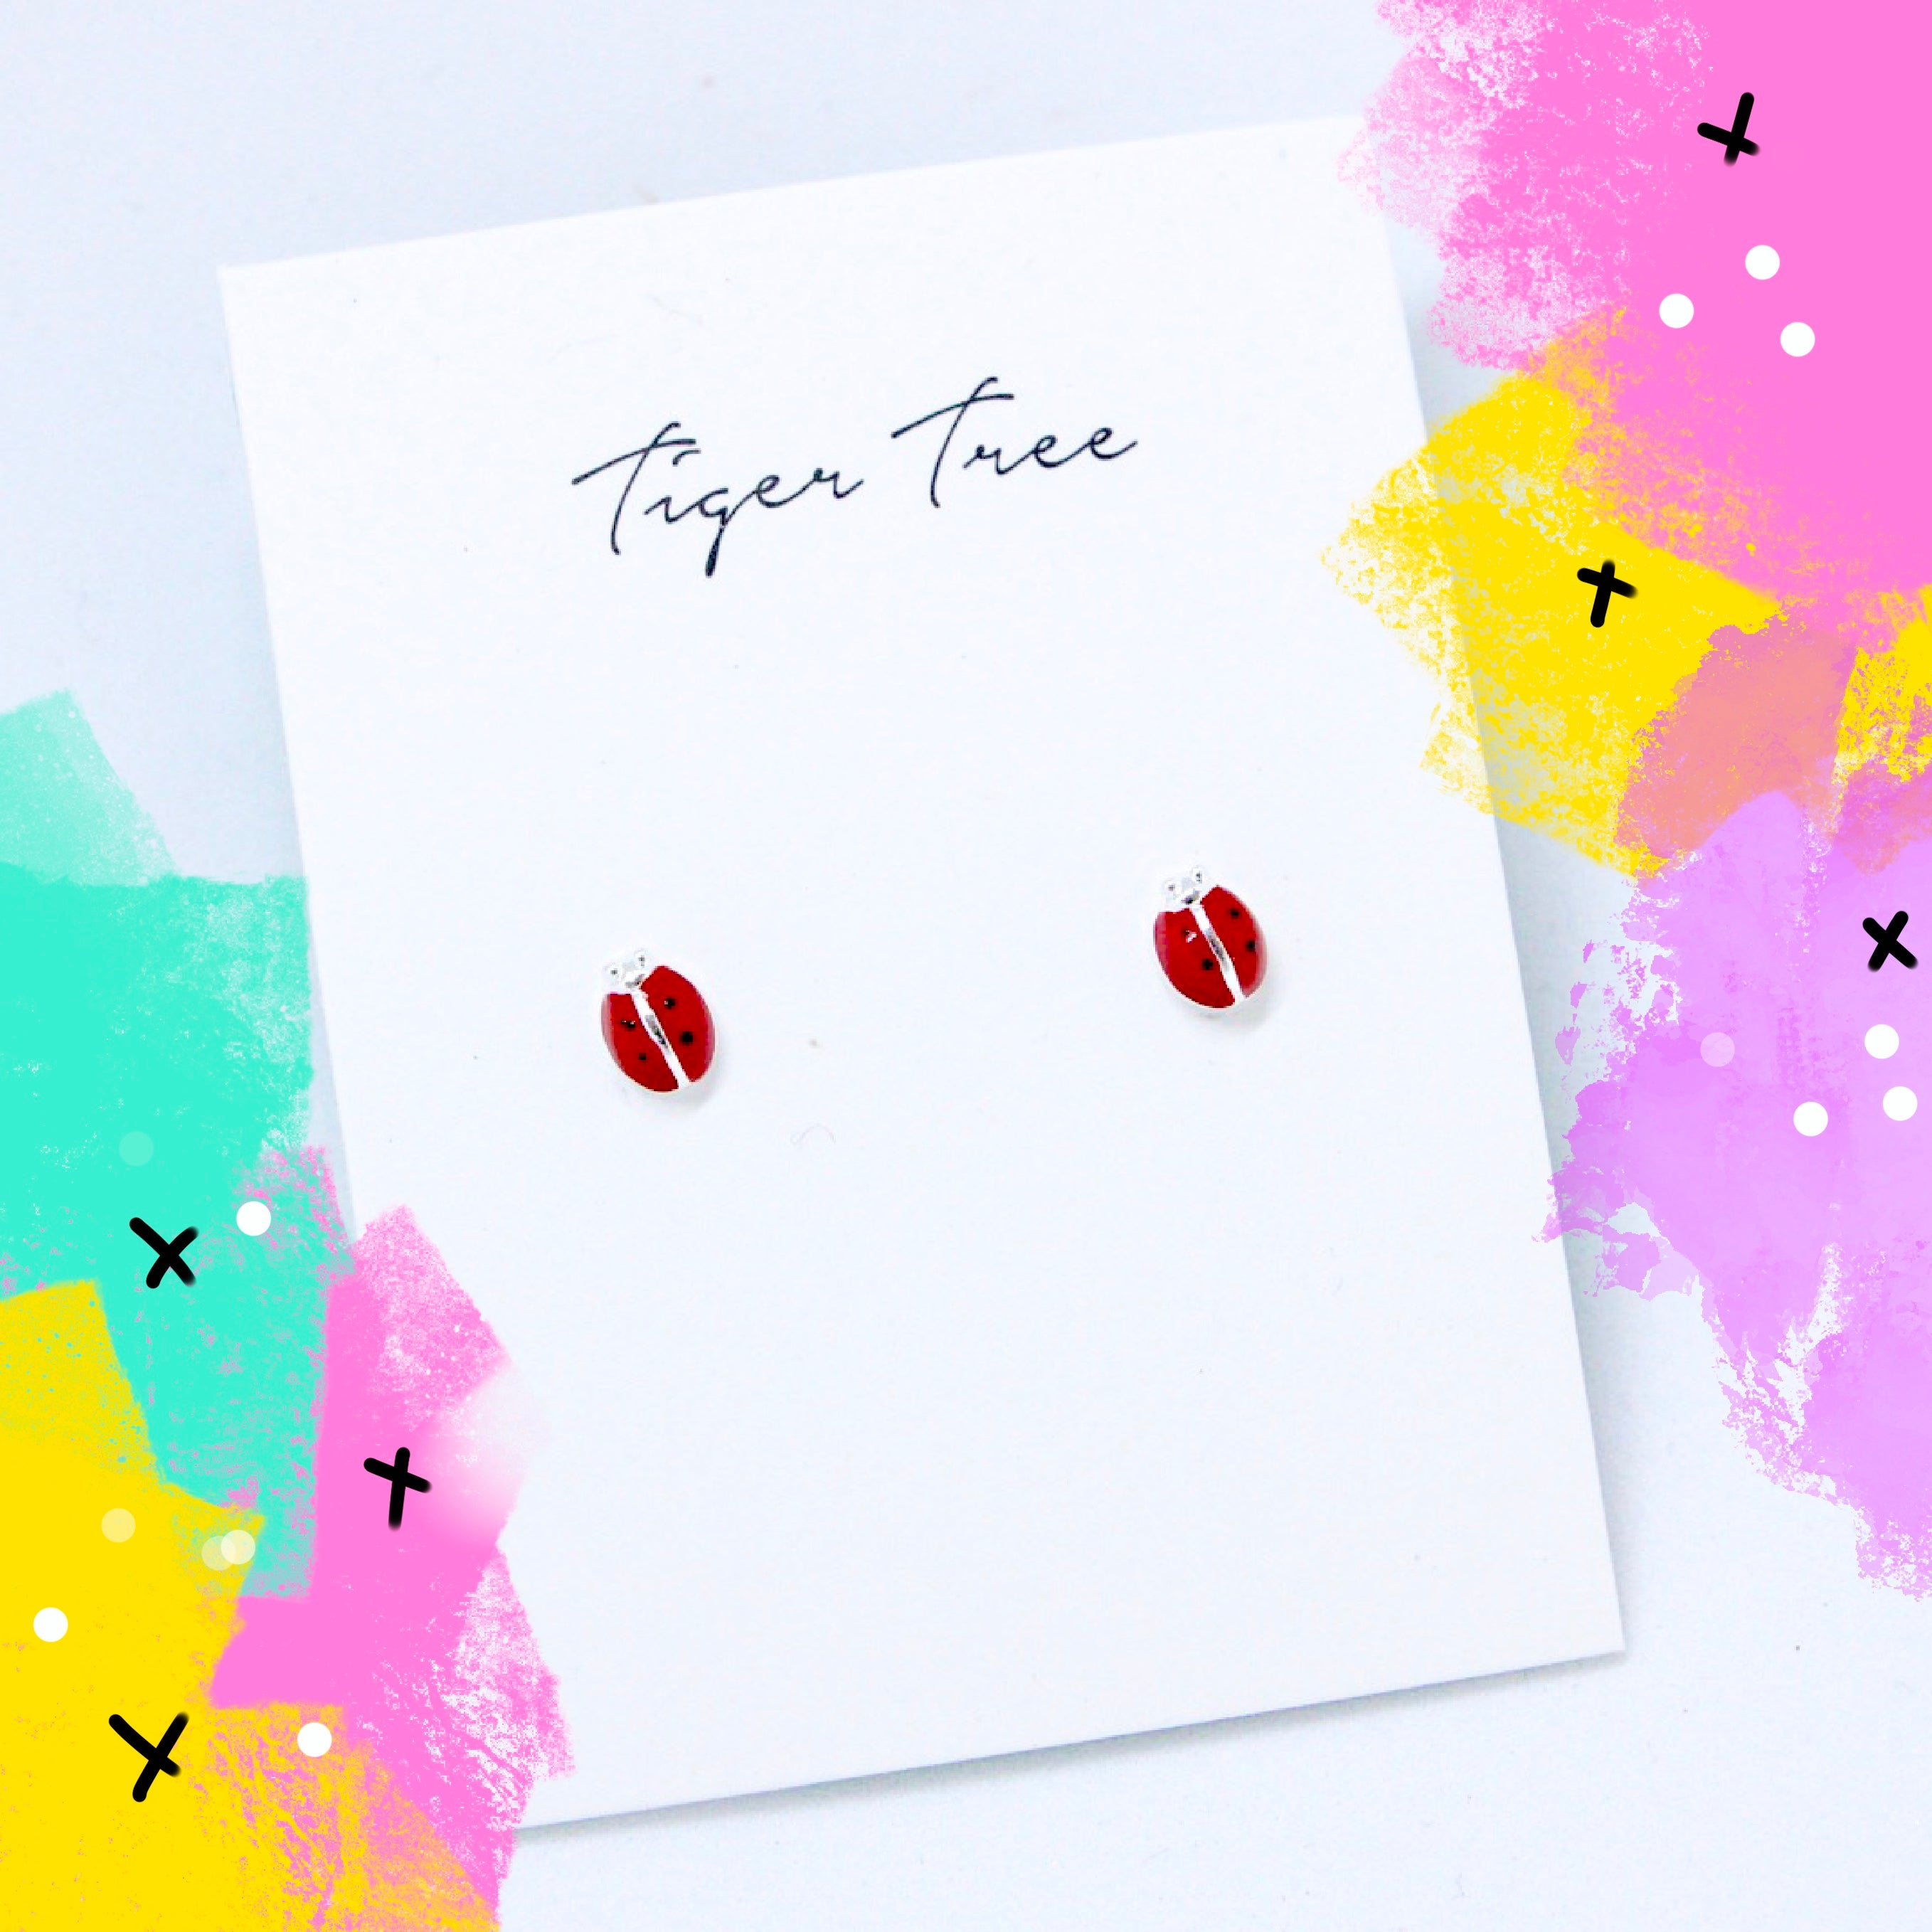 Tiger Tree red ladybirds